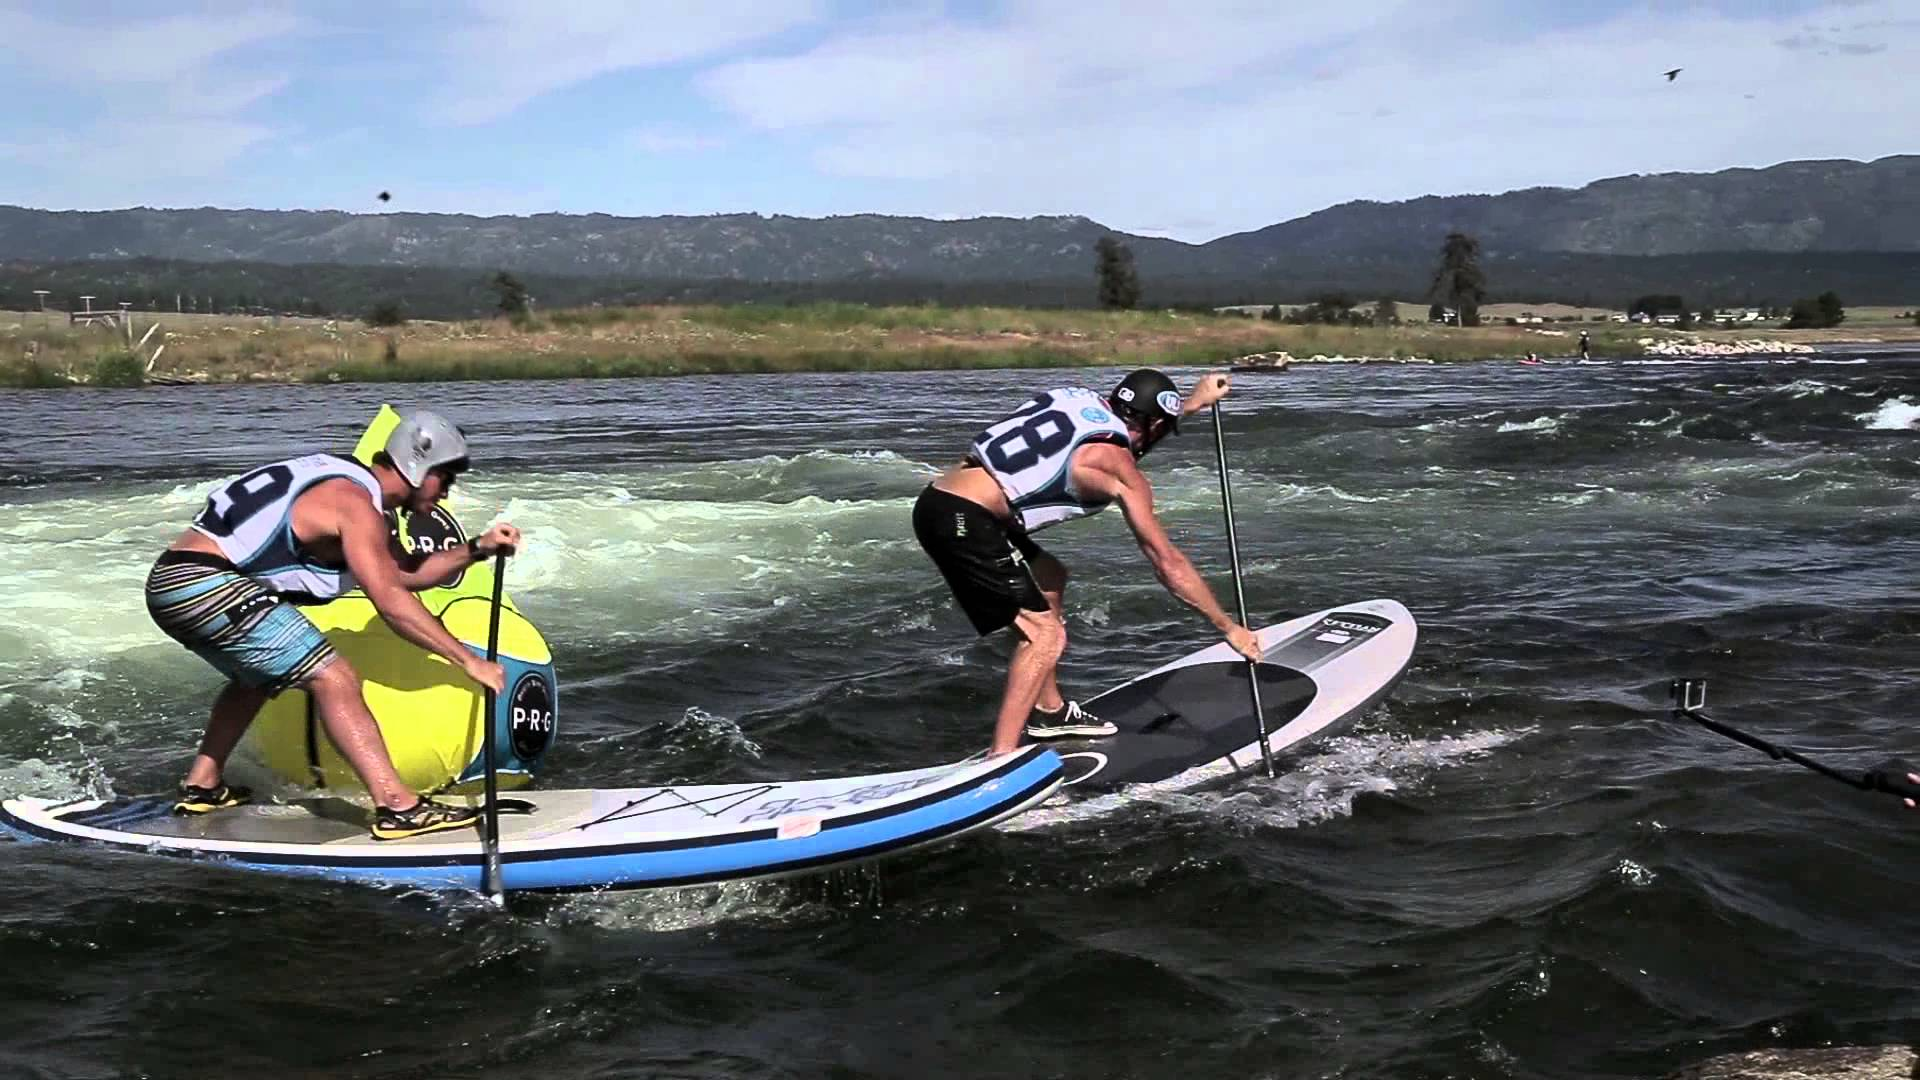 The Payette River Games 2015 as seen by QuickBlade